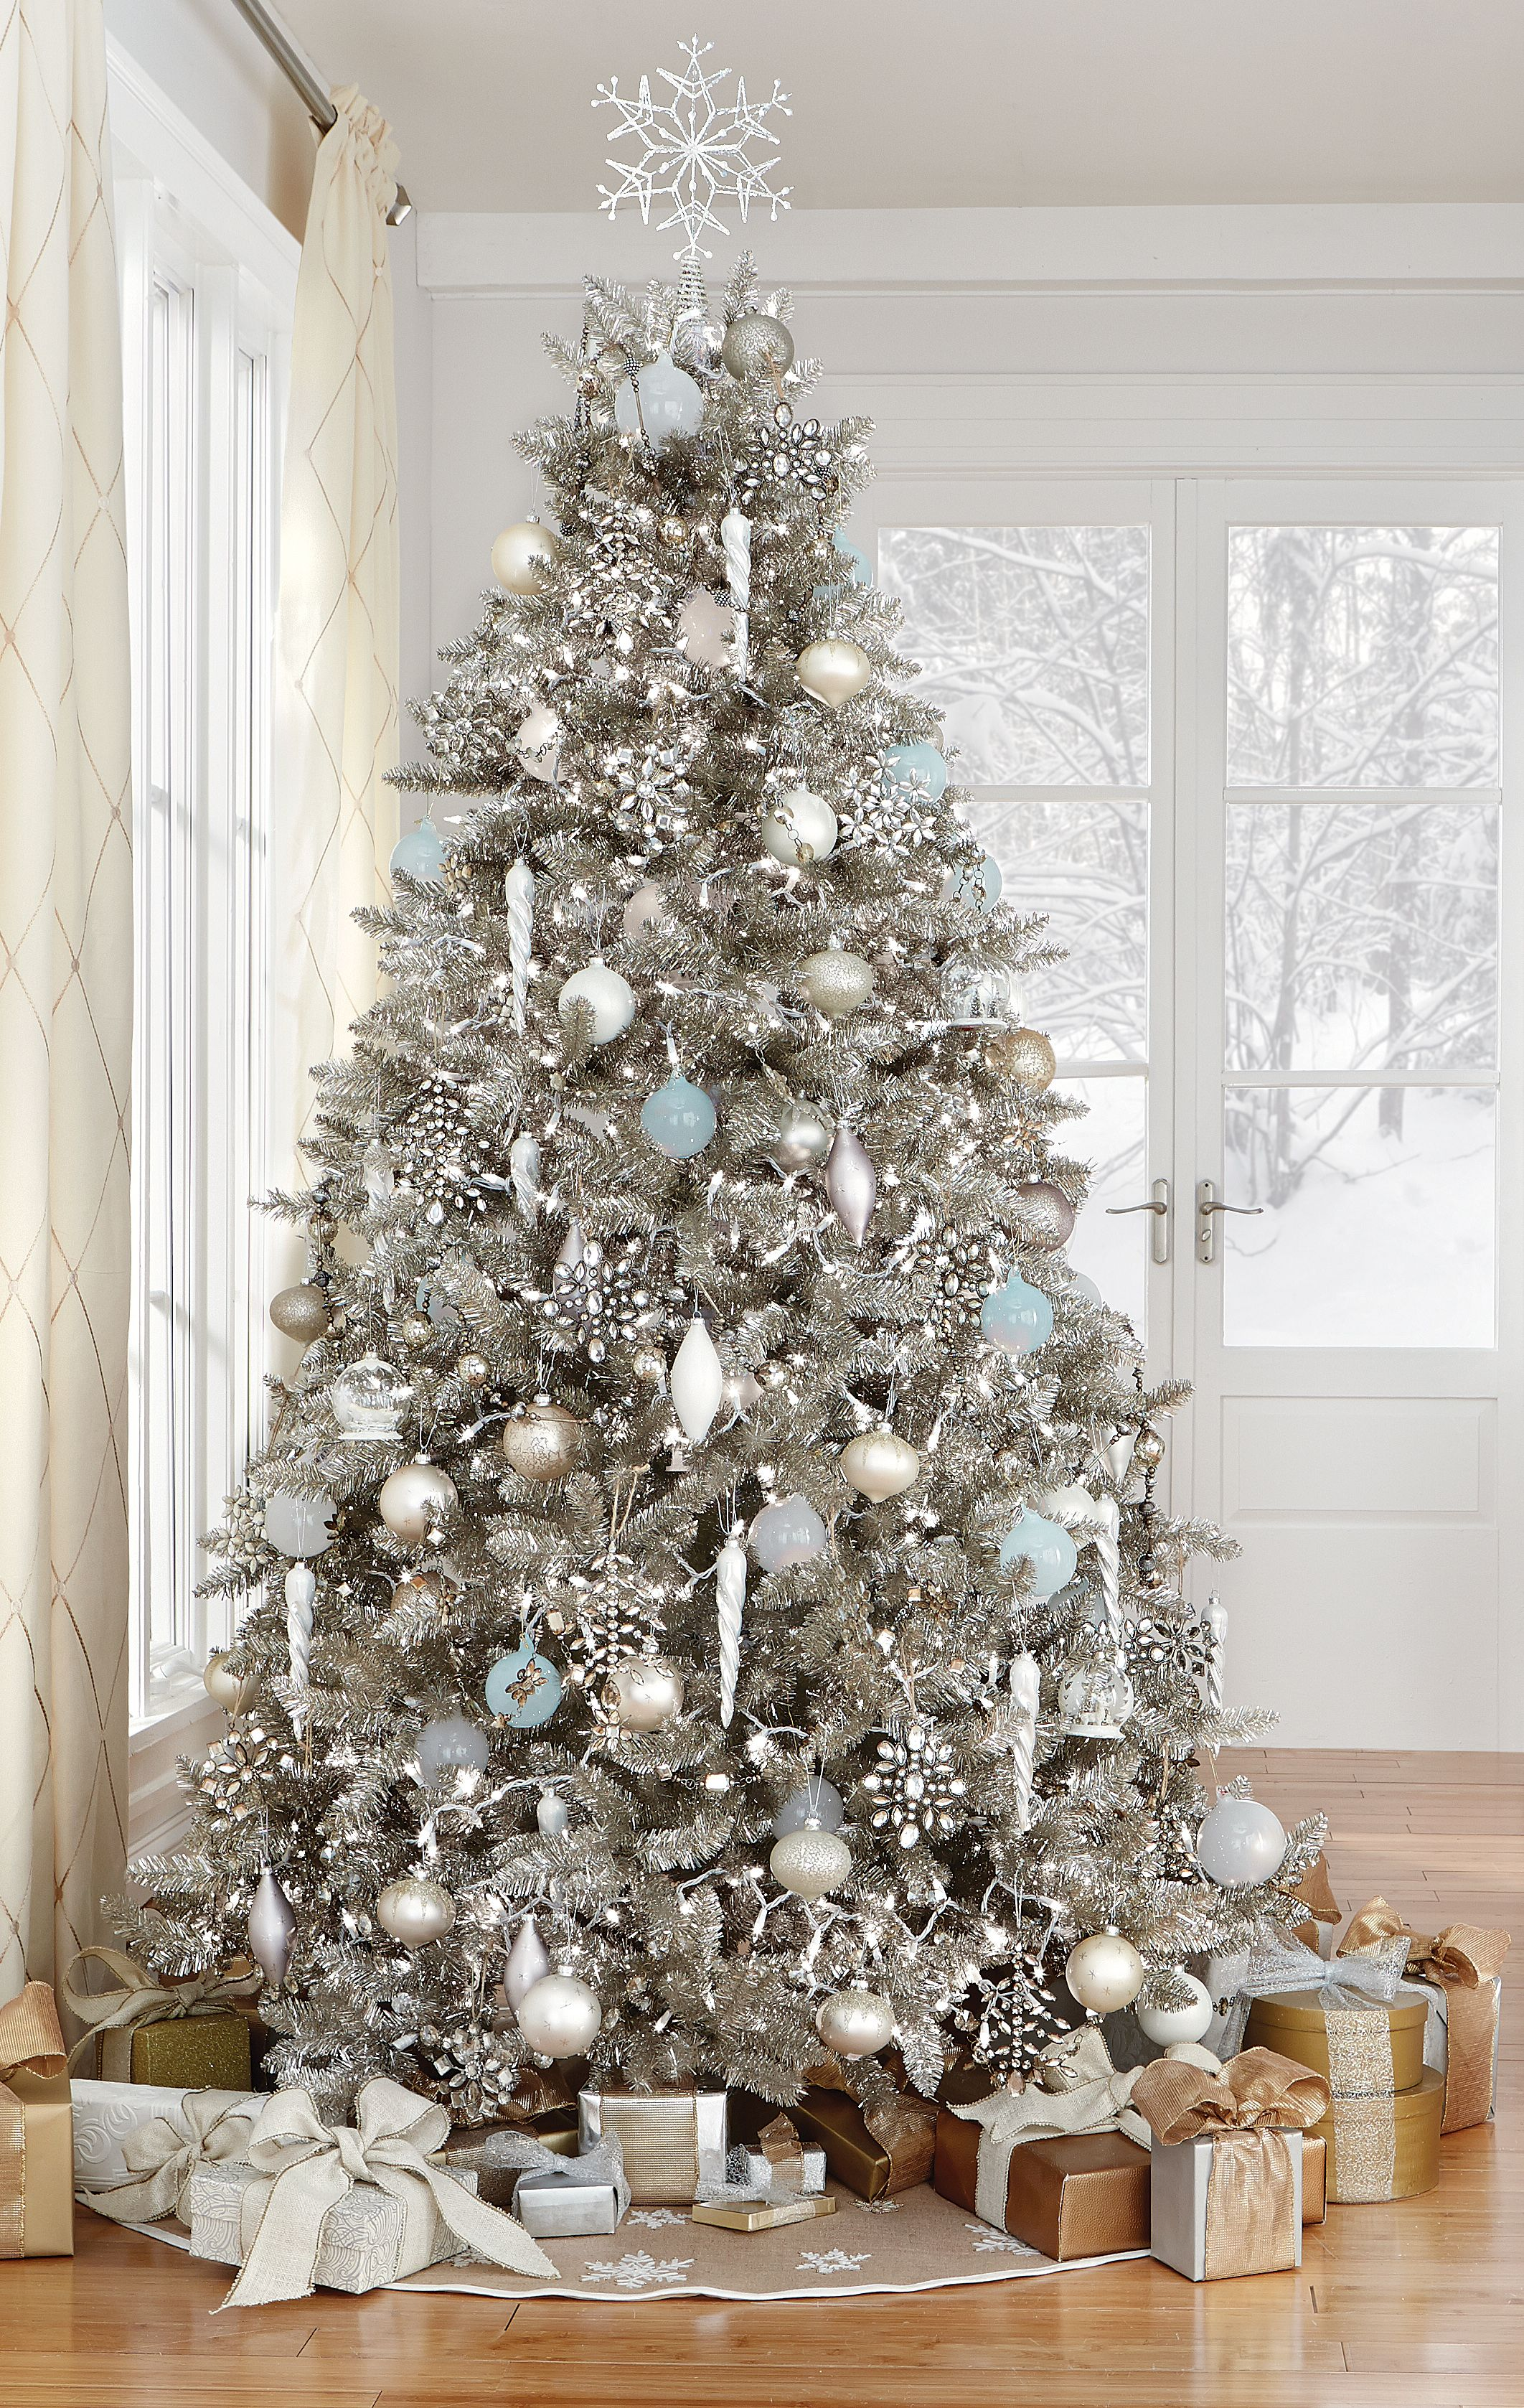 stunning in silver homedecoratorscom holiday2015 - Silver And White Christmas Tree Decorations